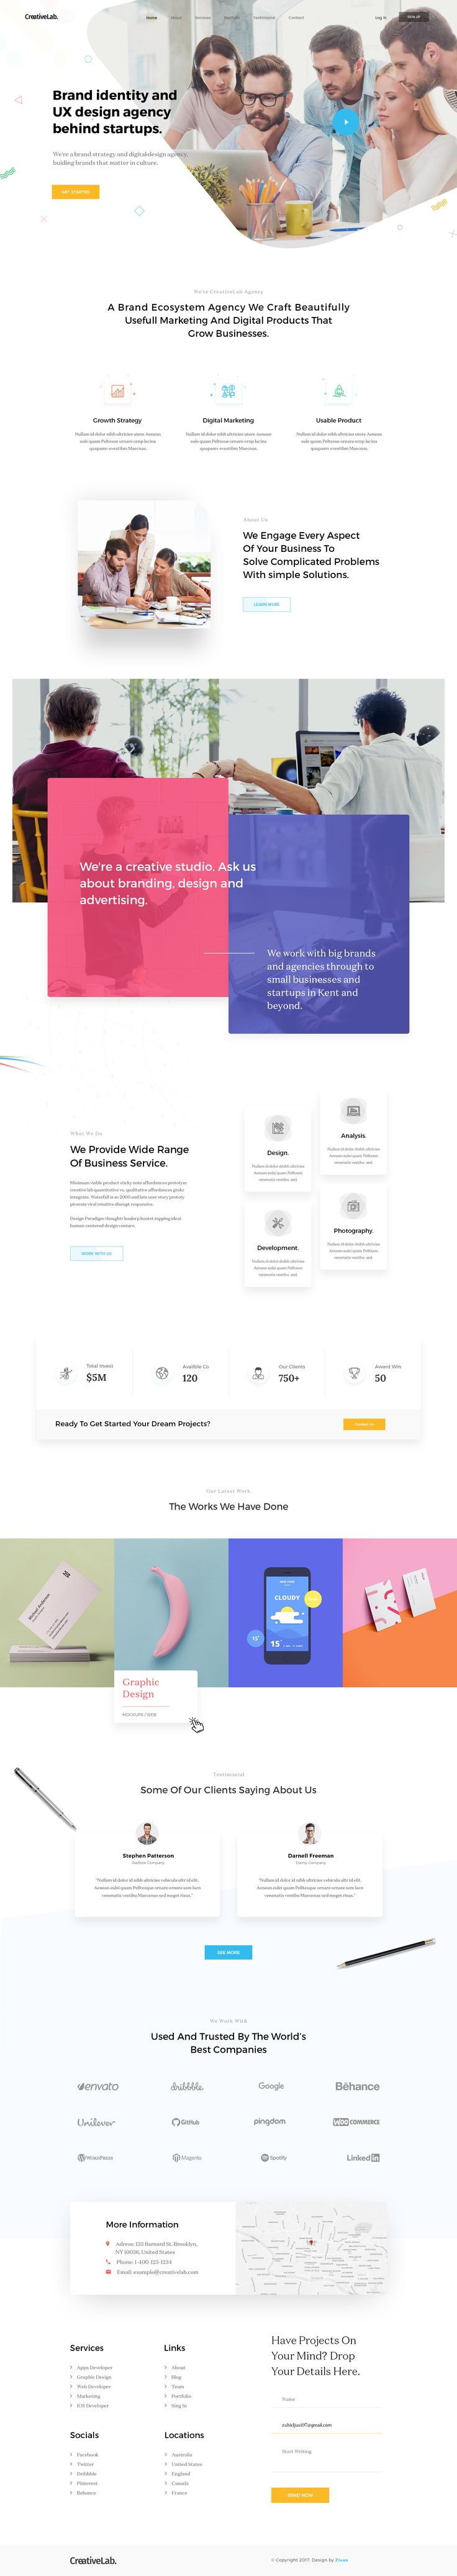 Agency landing page web design concept that is very creative